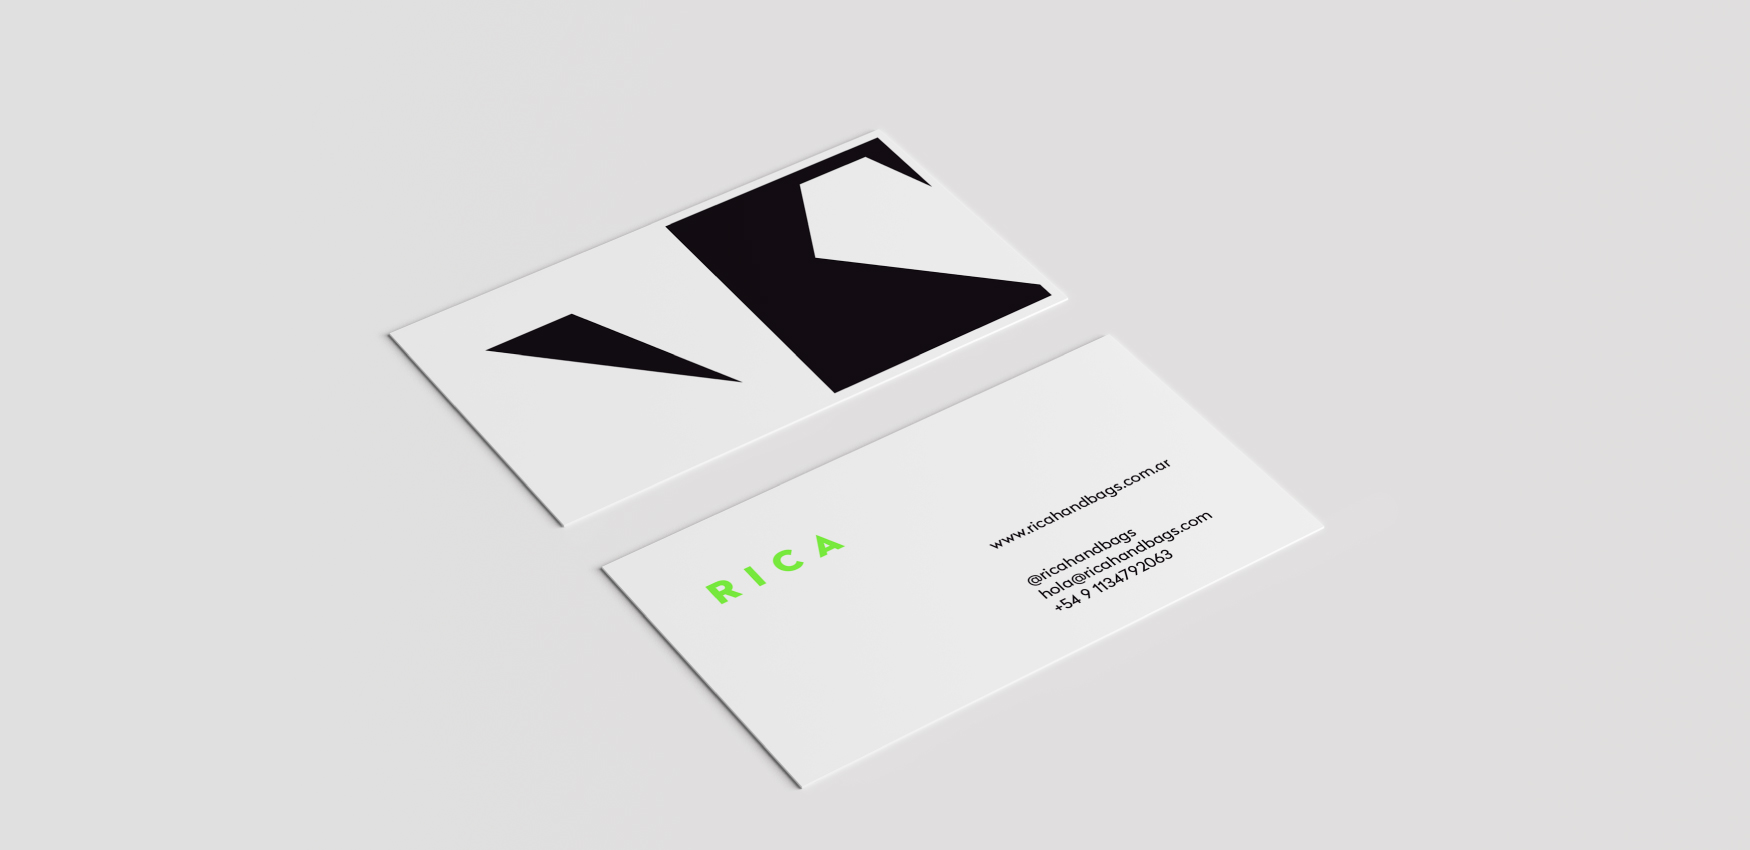 üla design studio rica branding fashion maca lateulade